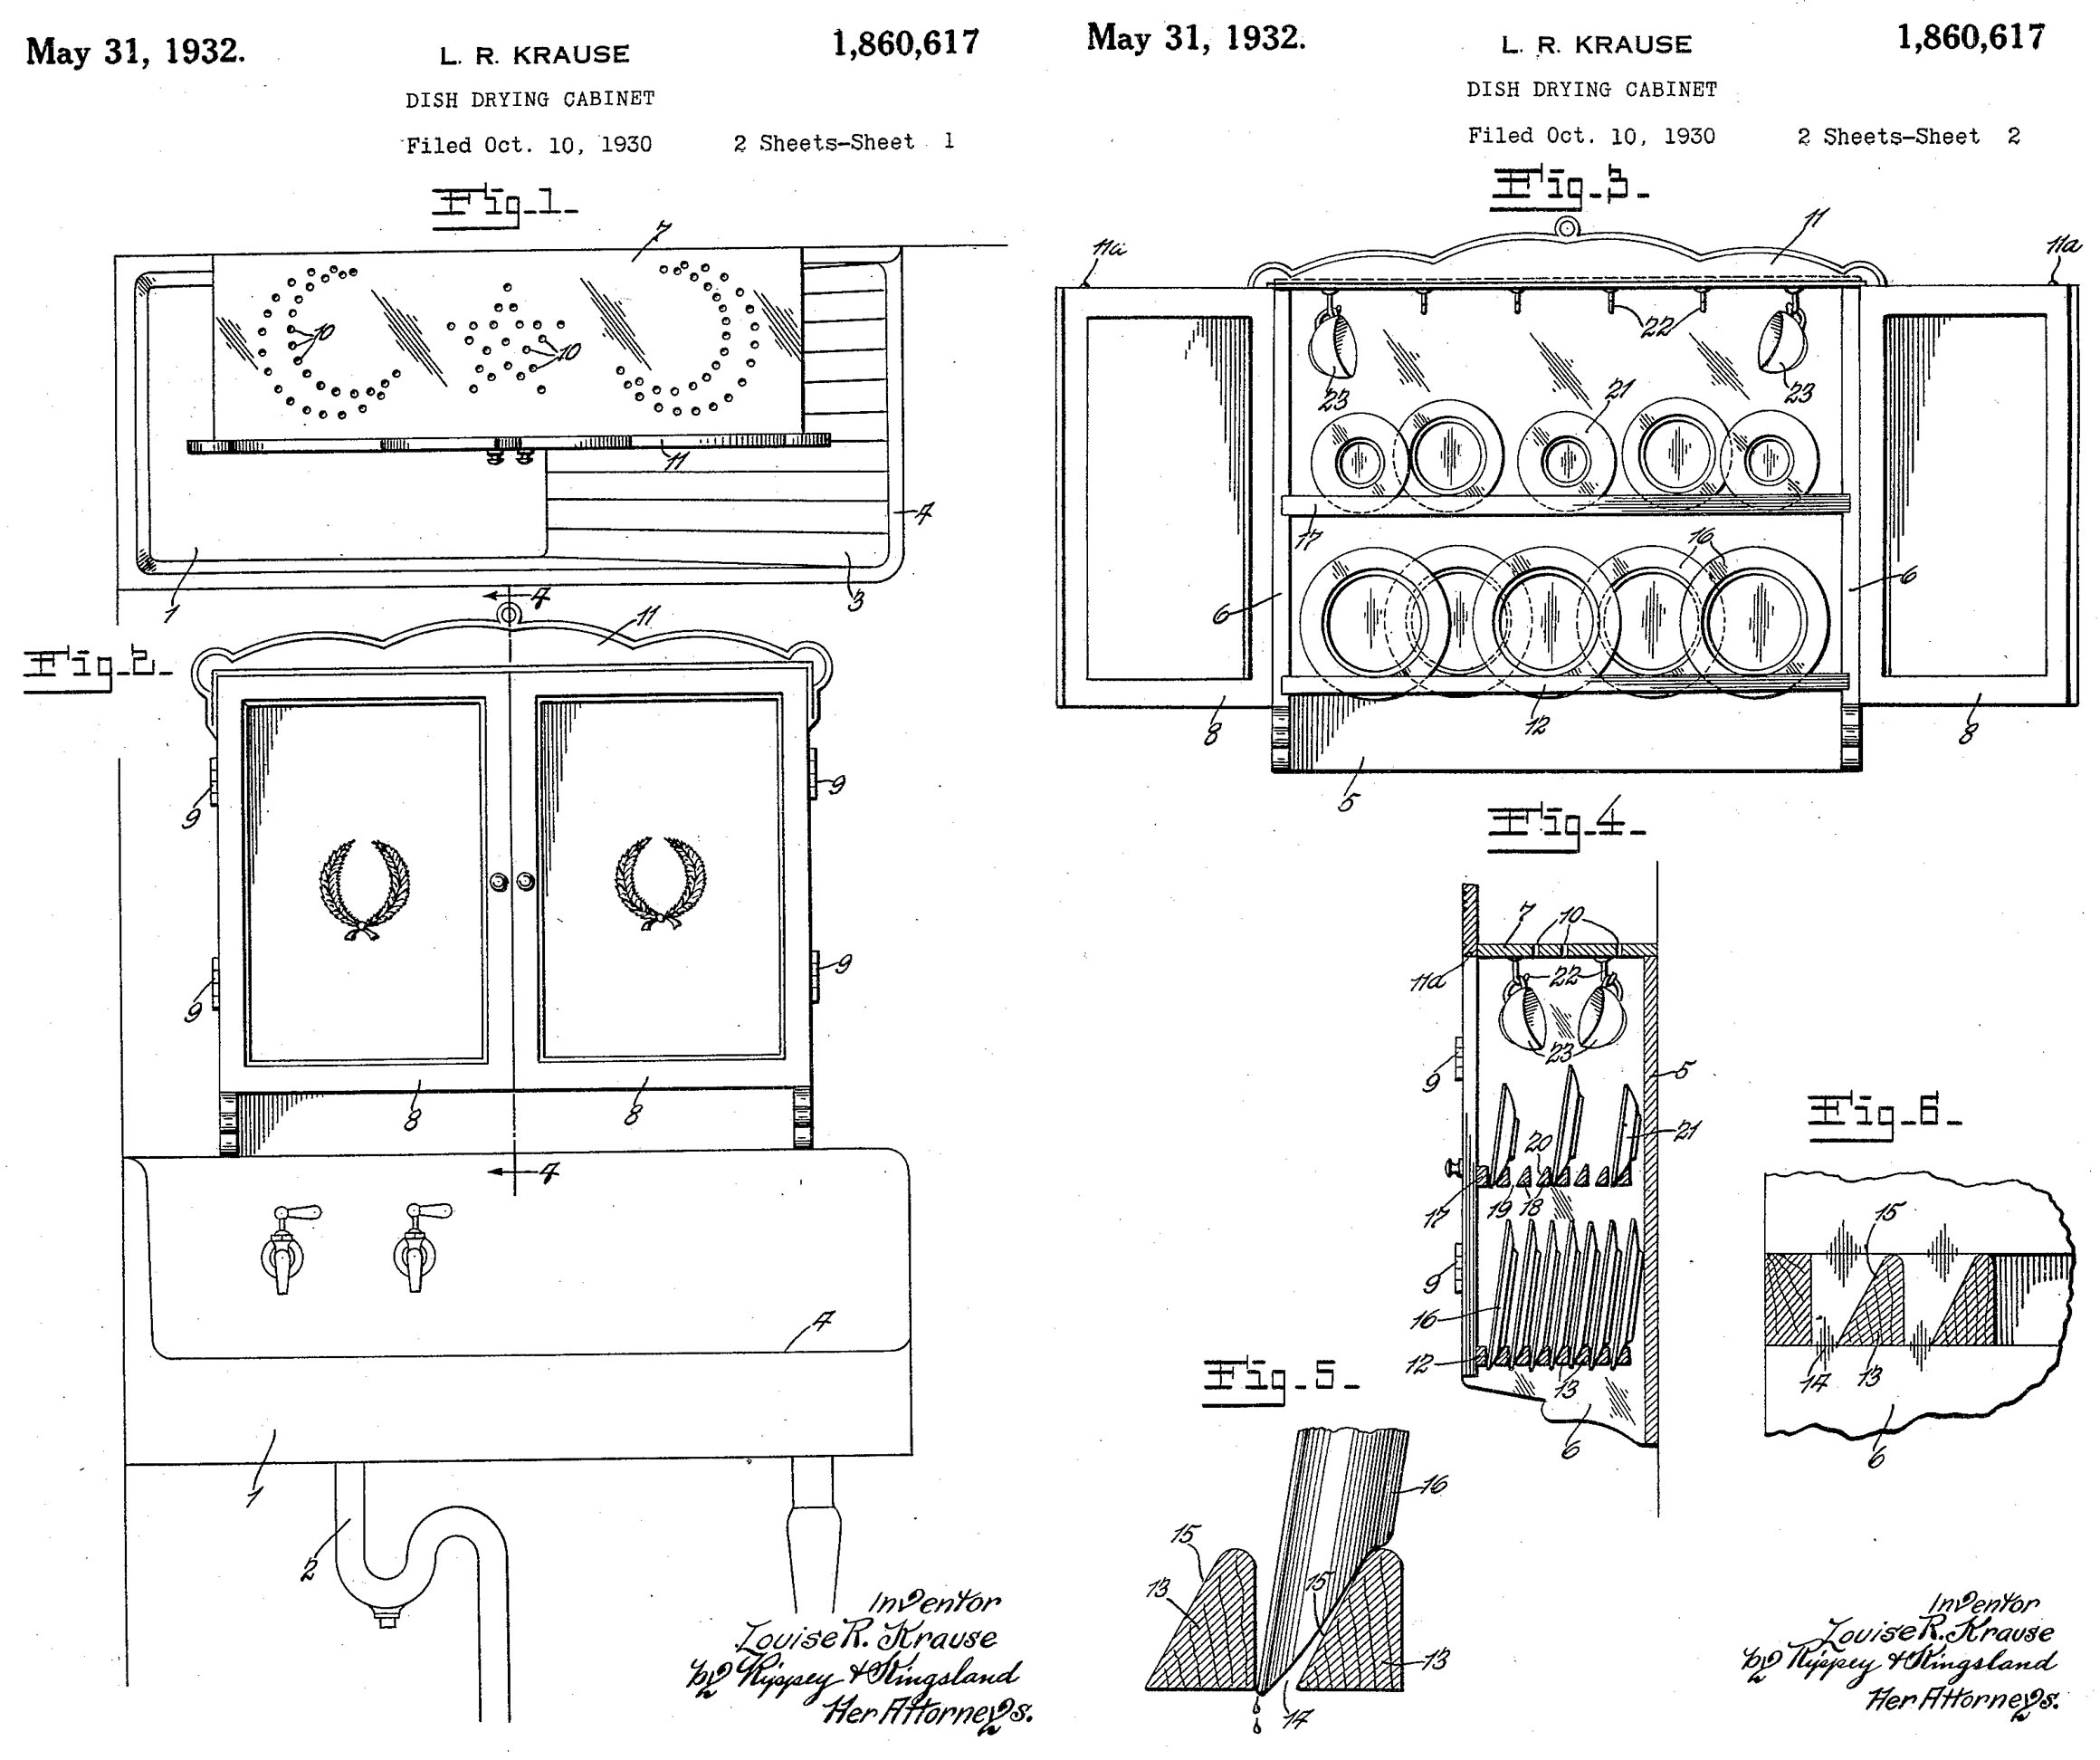 Dish Drying Cabinet Patented By Louise R. Krause (US Patent 1860617)